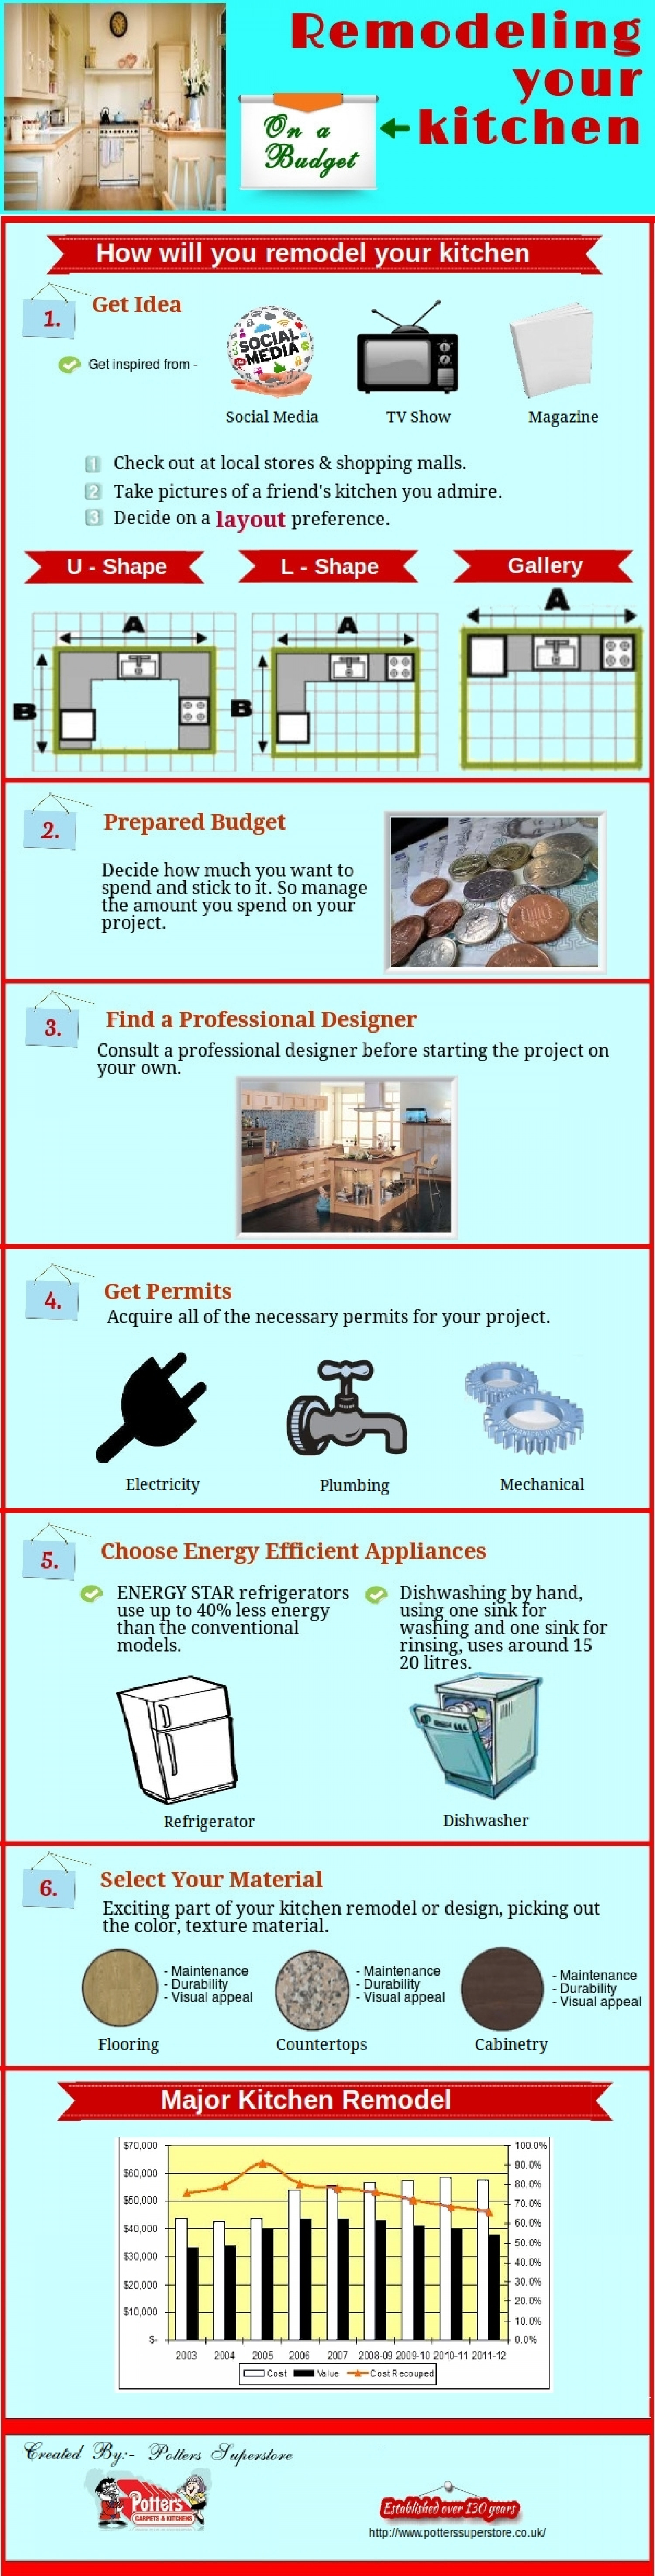 Remodeling Your Kitchen Infographic